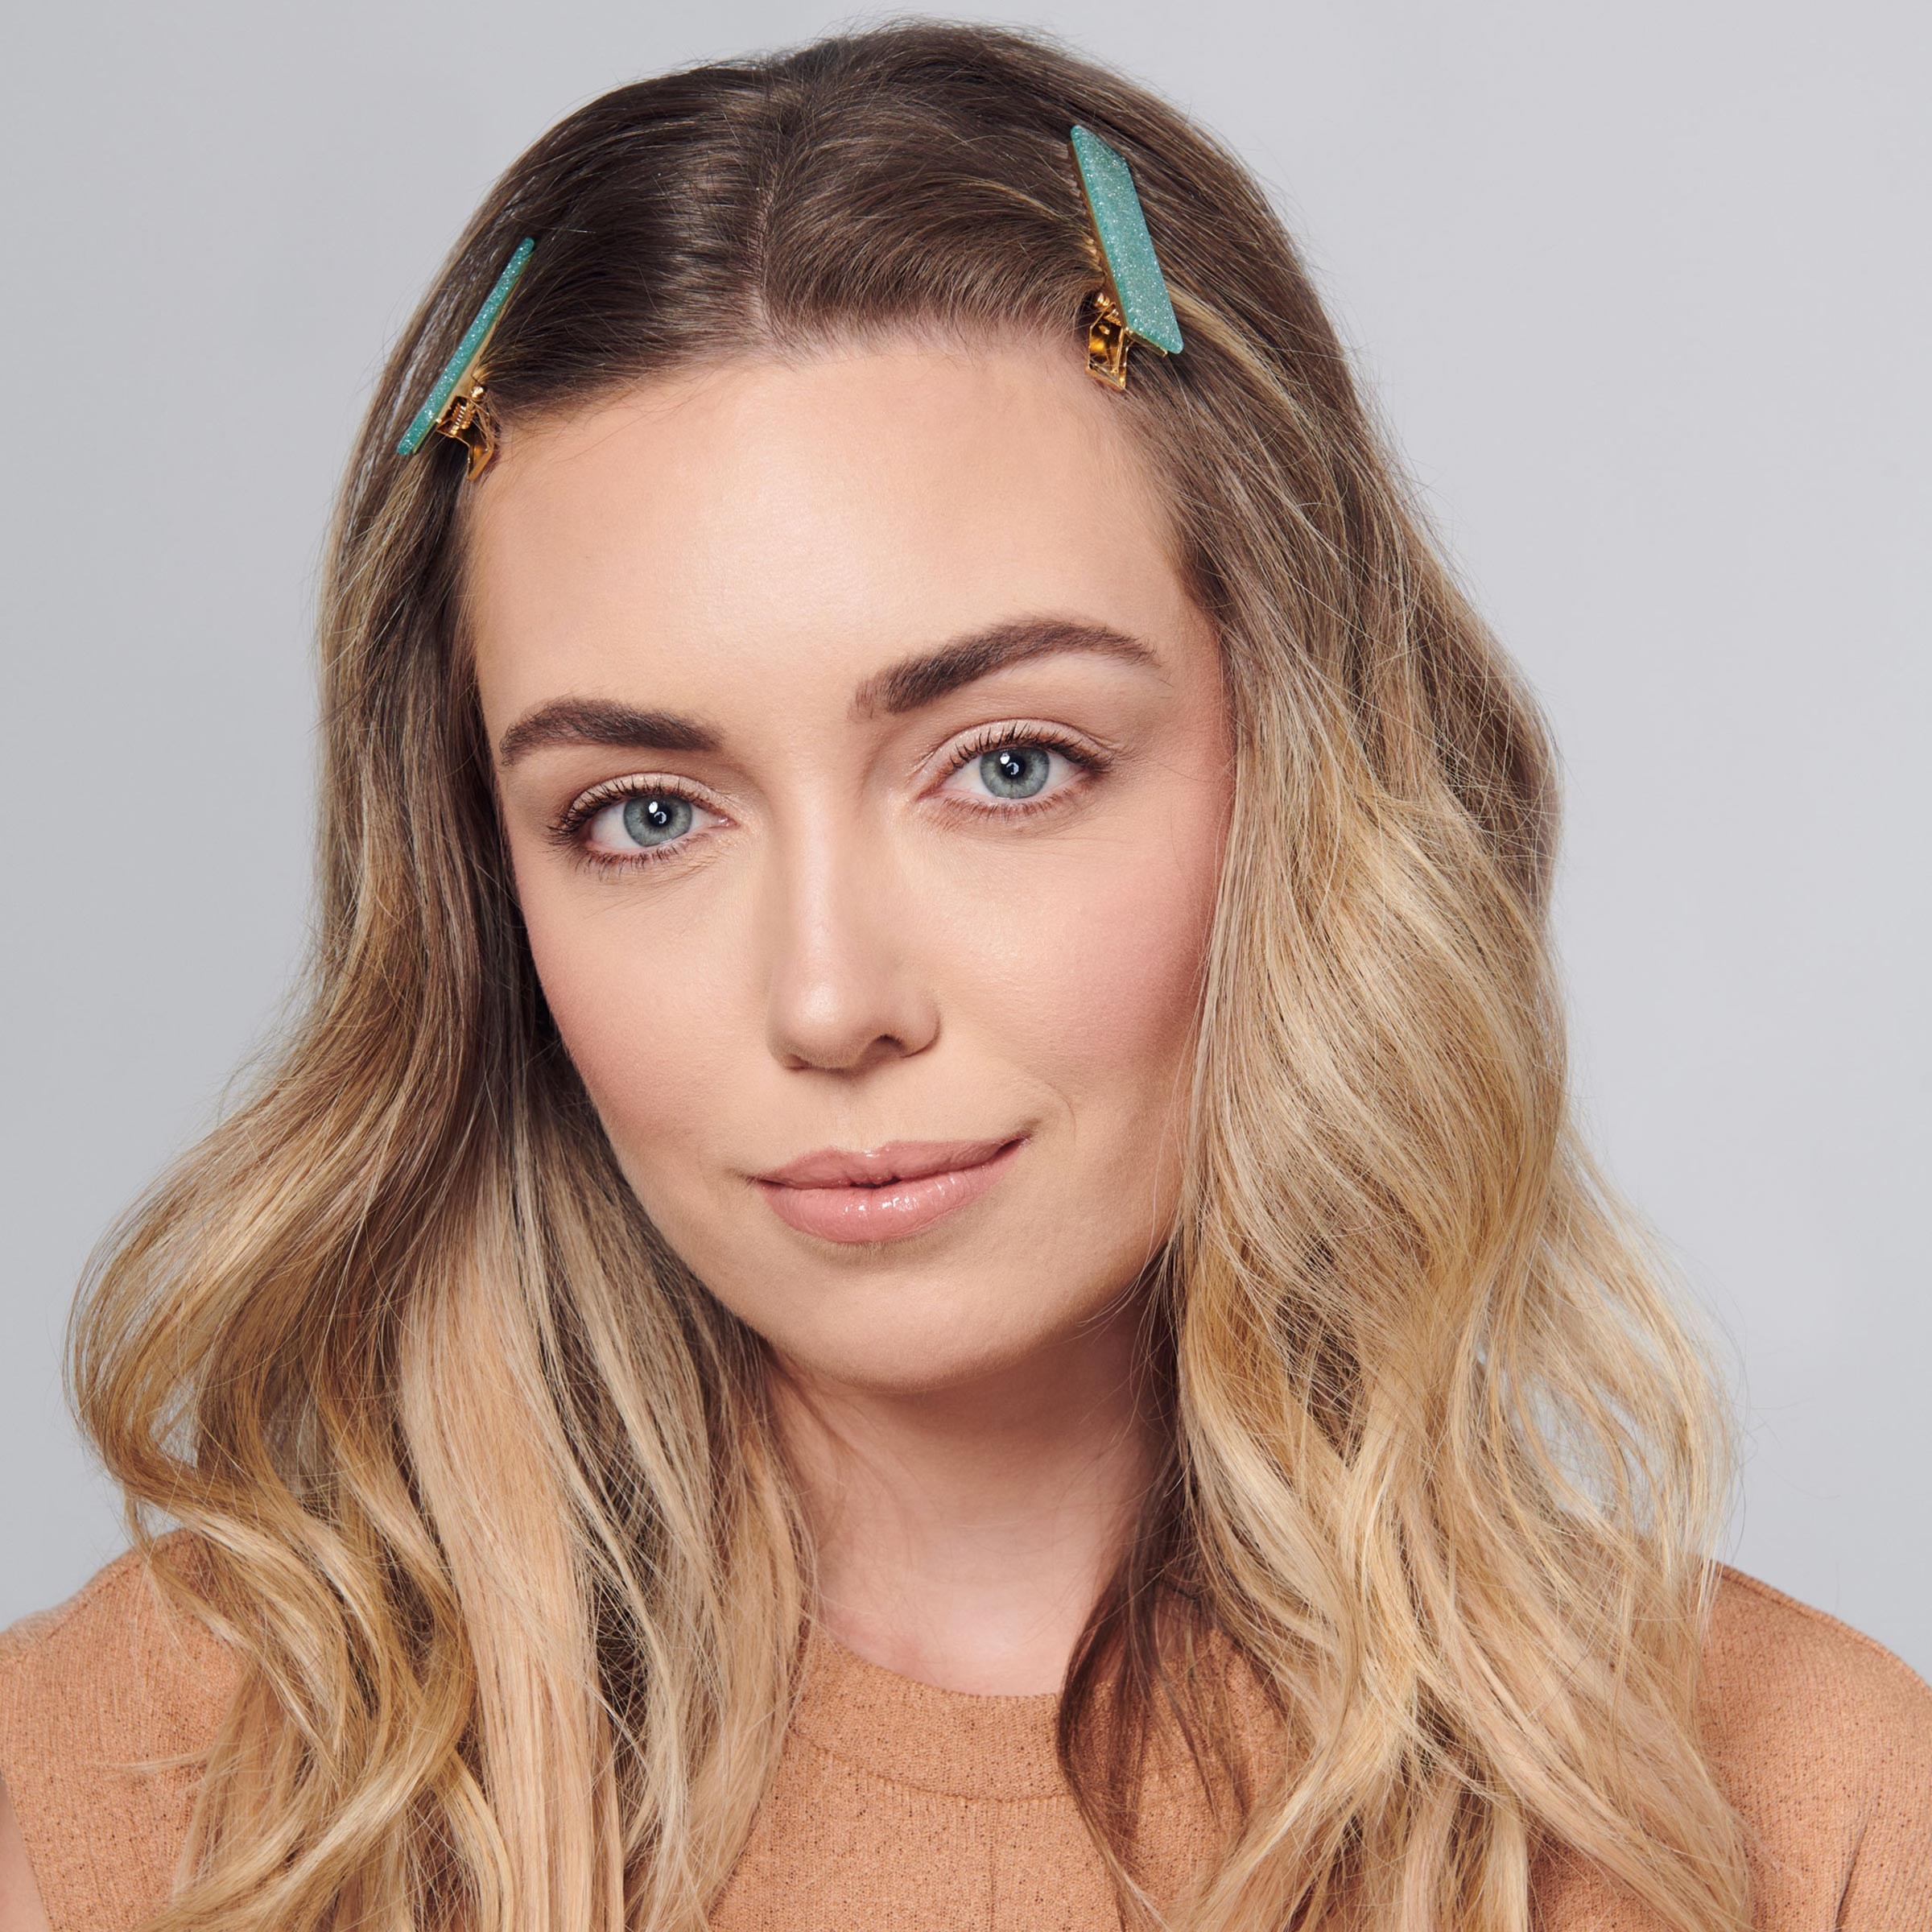 herstylecode 6 How to Wear Barrettes, 10 Easy Ways to Style Barrettes